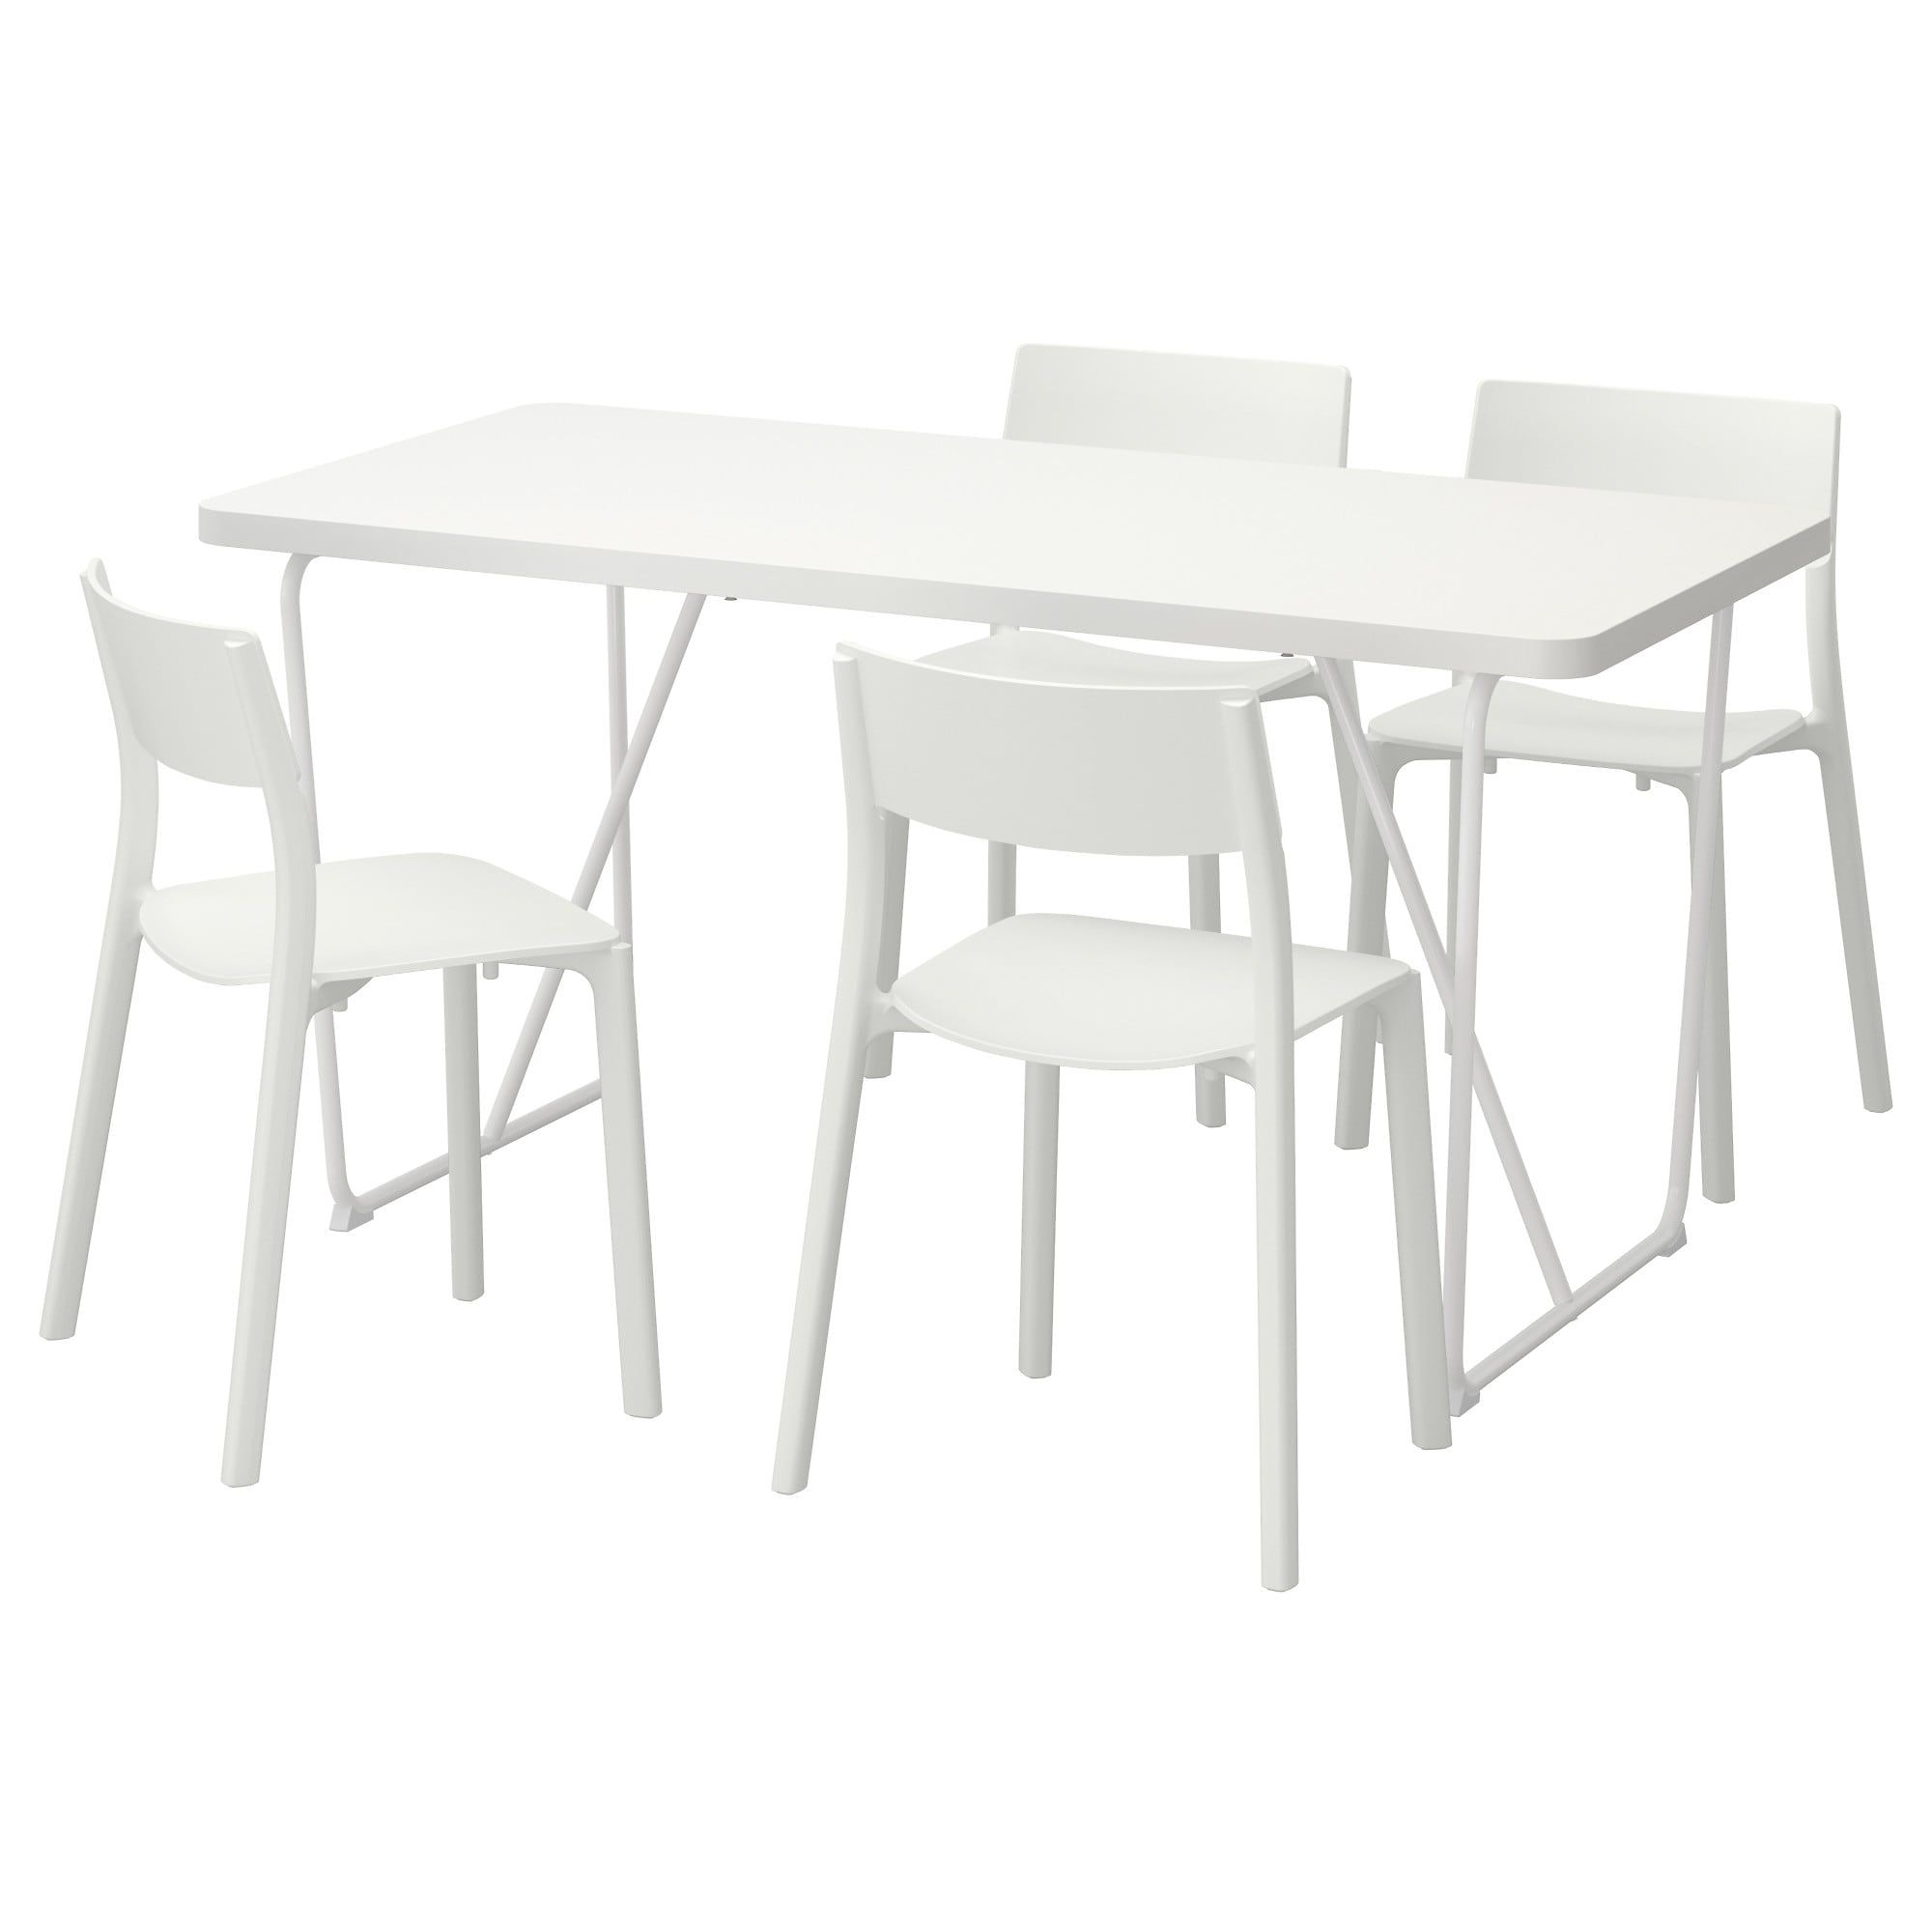 Rydeback Backaryd Janinge Table And 4 Chairs White White 59